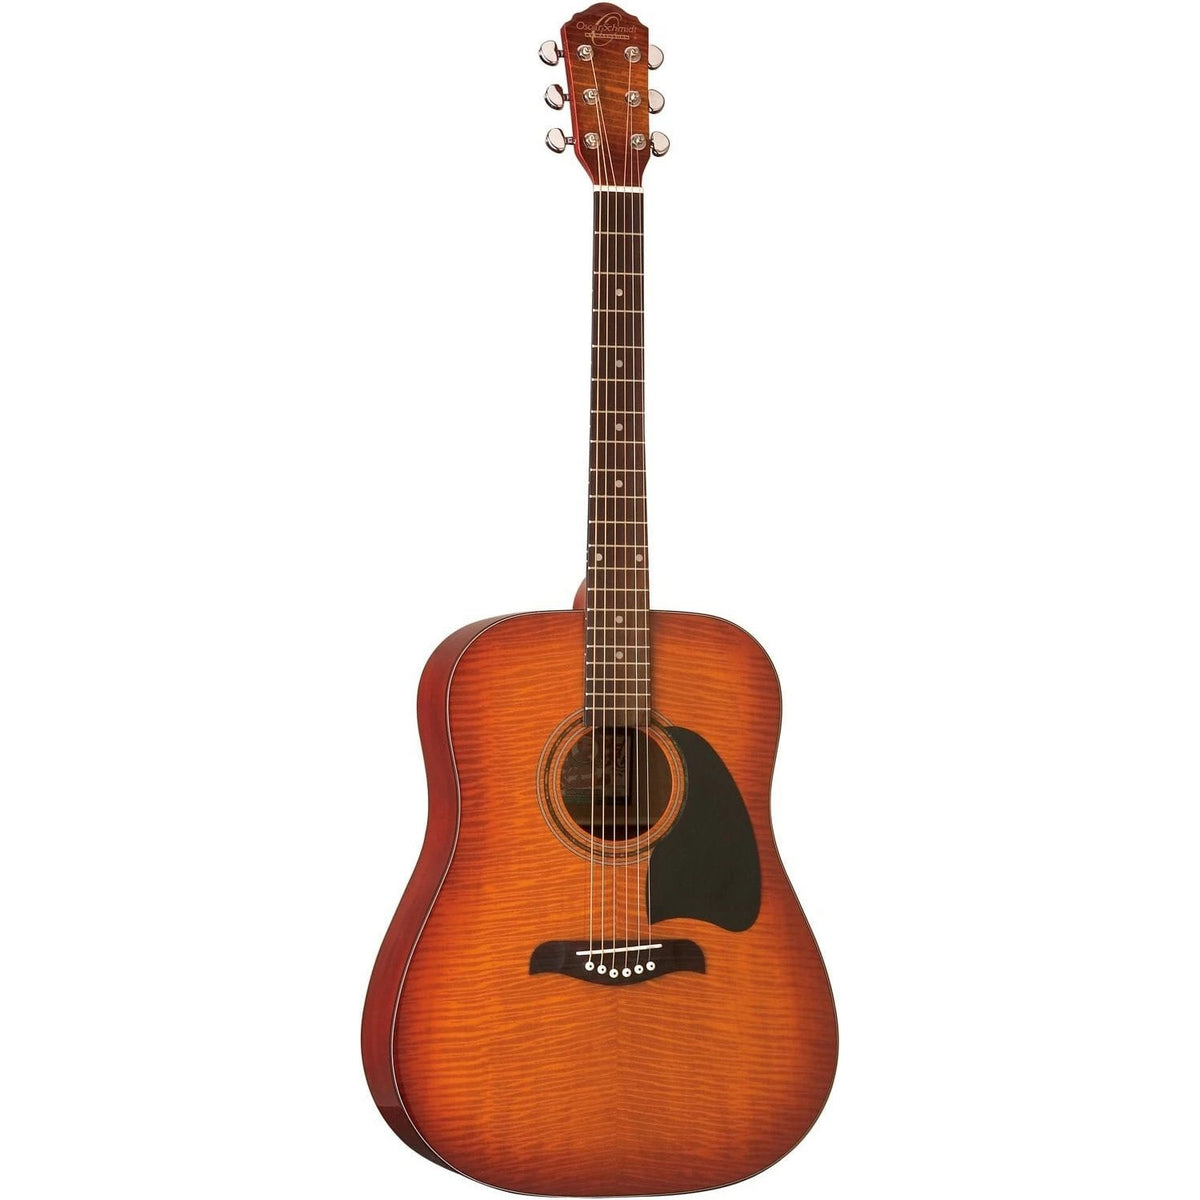 Oscar Schmidt OG2FYS Acoustic Guitar - Flame Yellow Sunburst